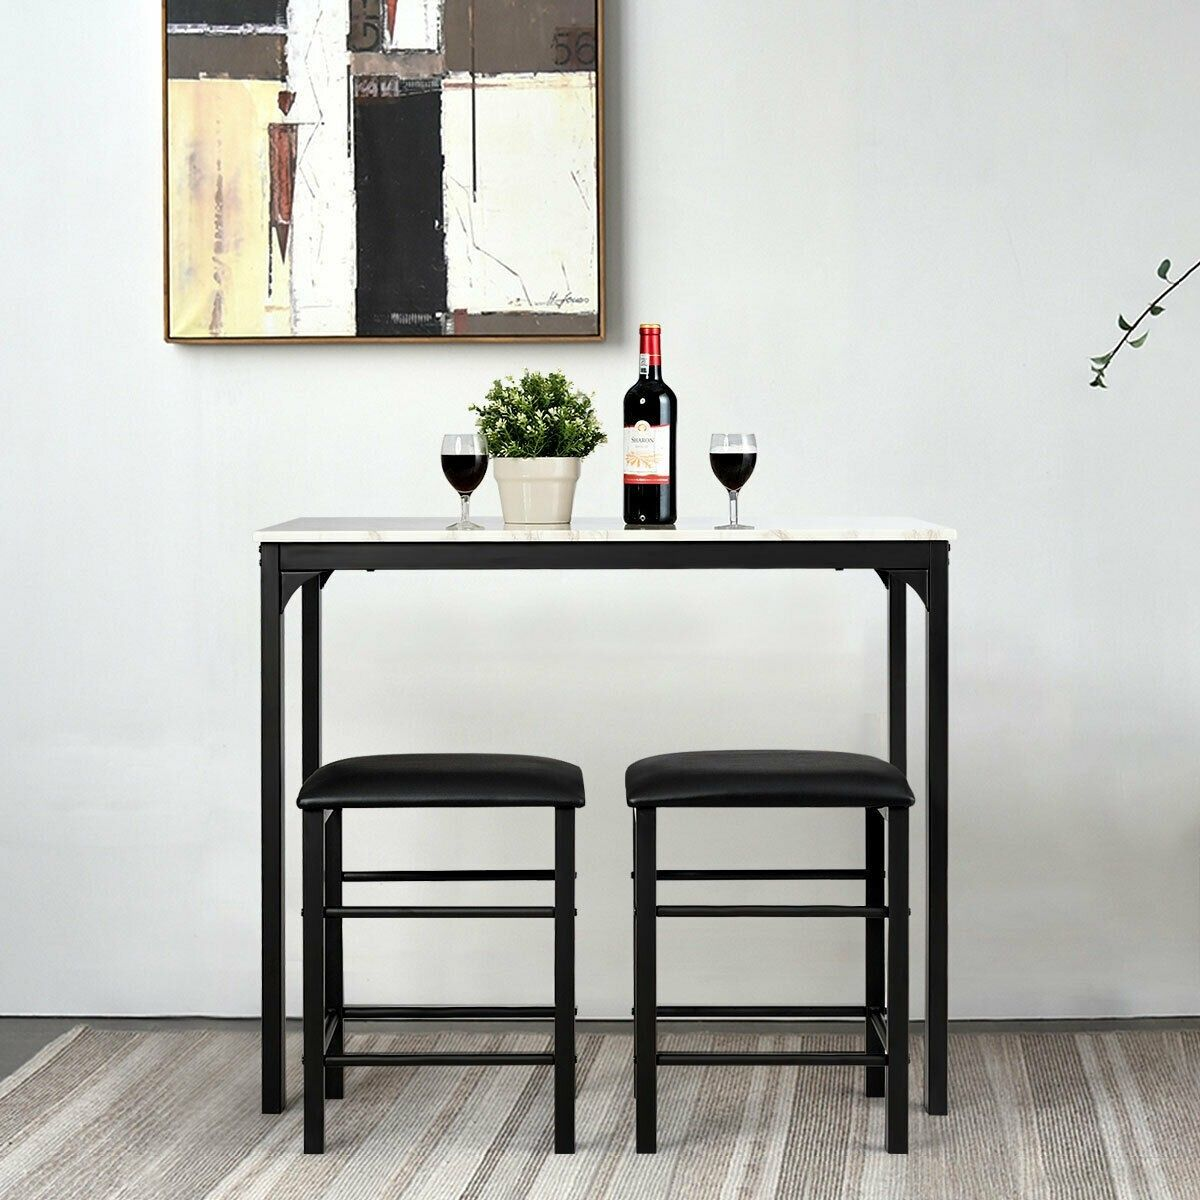 3 Pcs Counter Height Dining Set Faux Marble Table Counter Height Dining Sets Breakfast Nook Table Set Black Dining Room Furniture